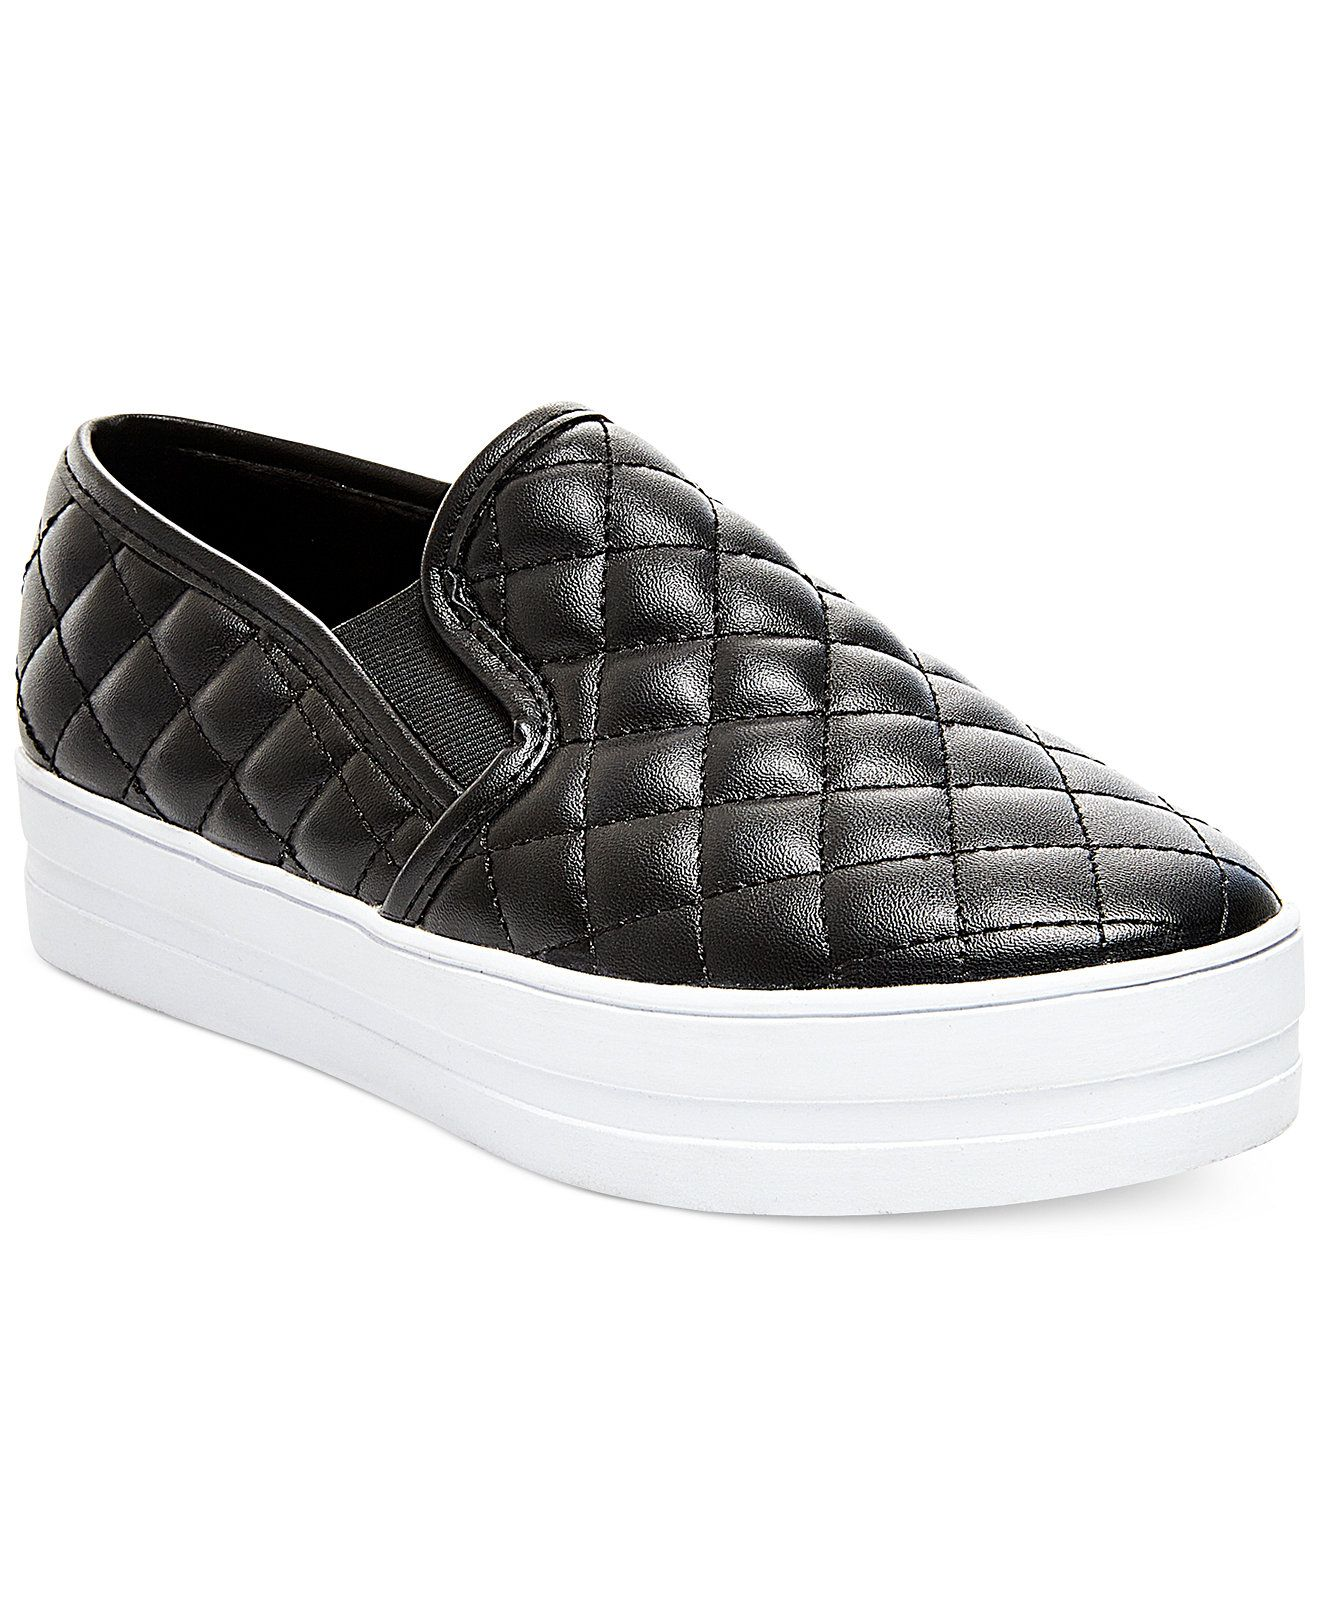 Madden Girl Plaaya Quilted Flatform Slip-On Sneakers - Madden Girl - Shoes  - Macy's